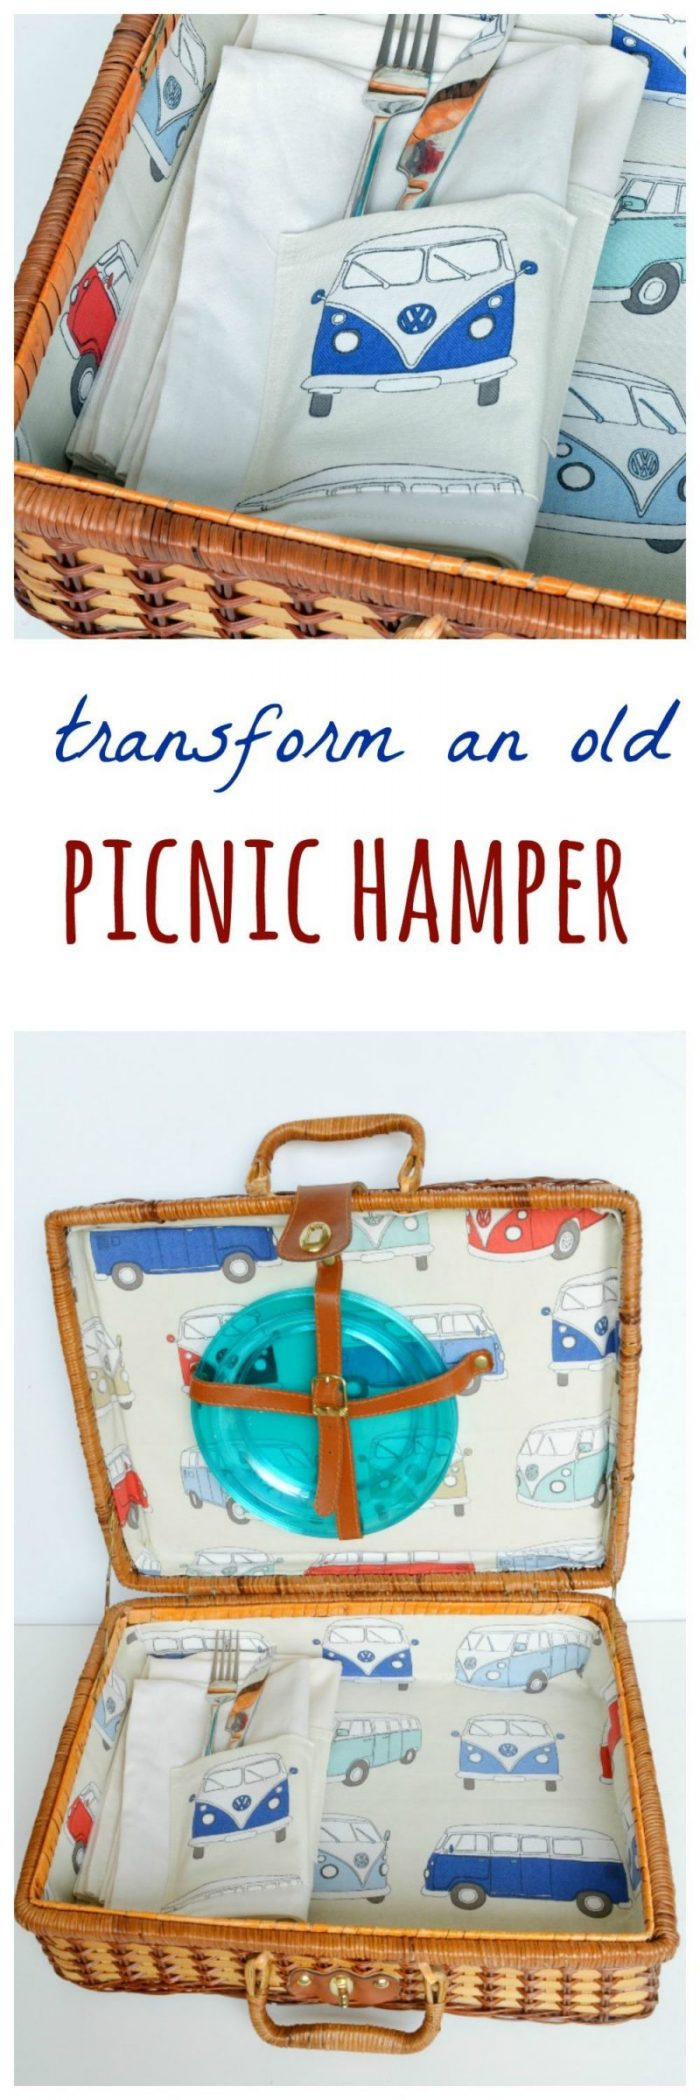 How to line a picnic hamper (post sponsored by Volkswagen) 4